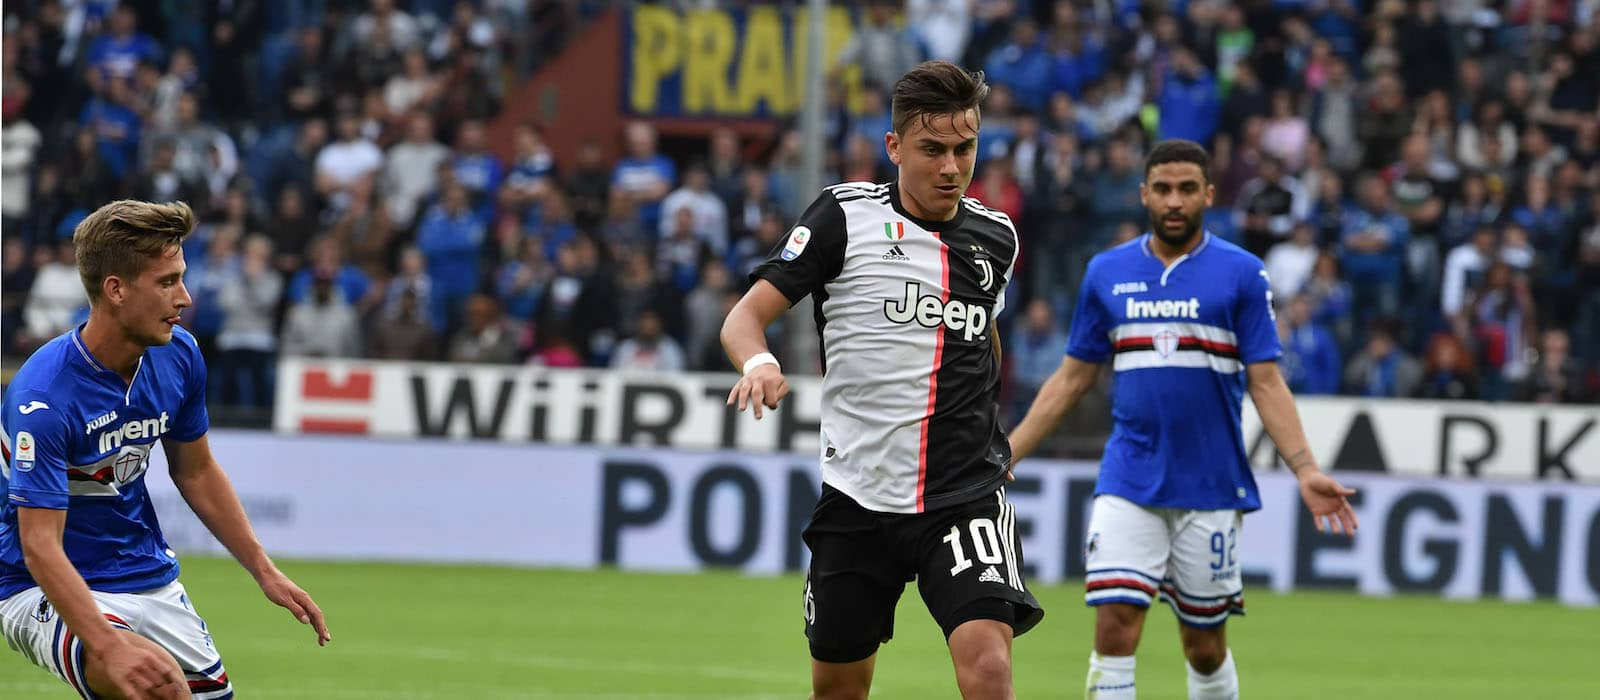 Manchester United fans support club's decision to abandon Paulo Dybala deal